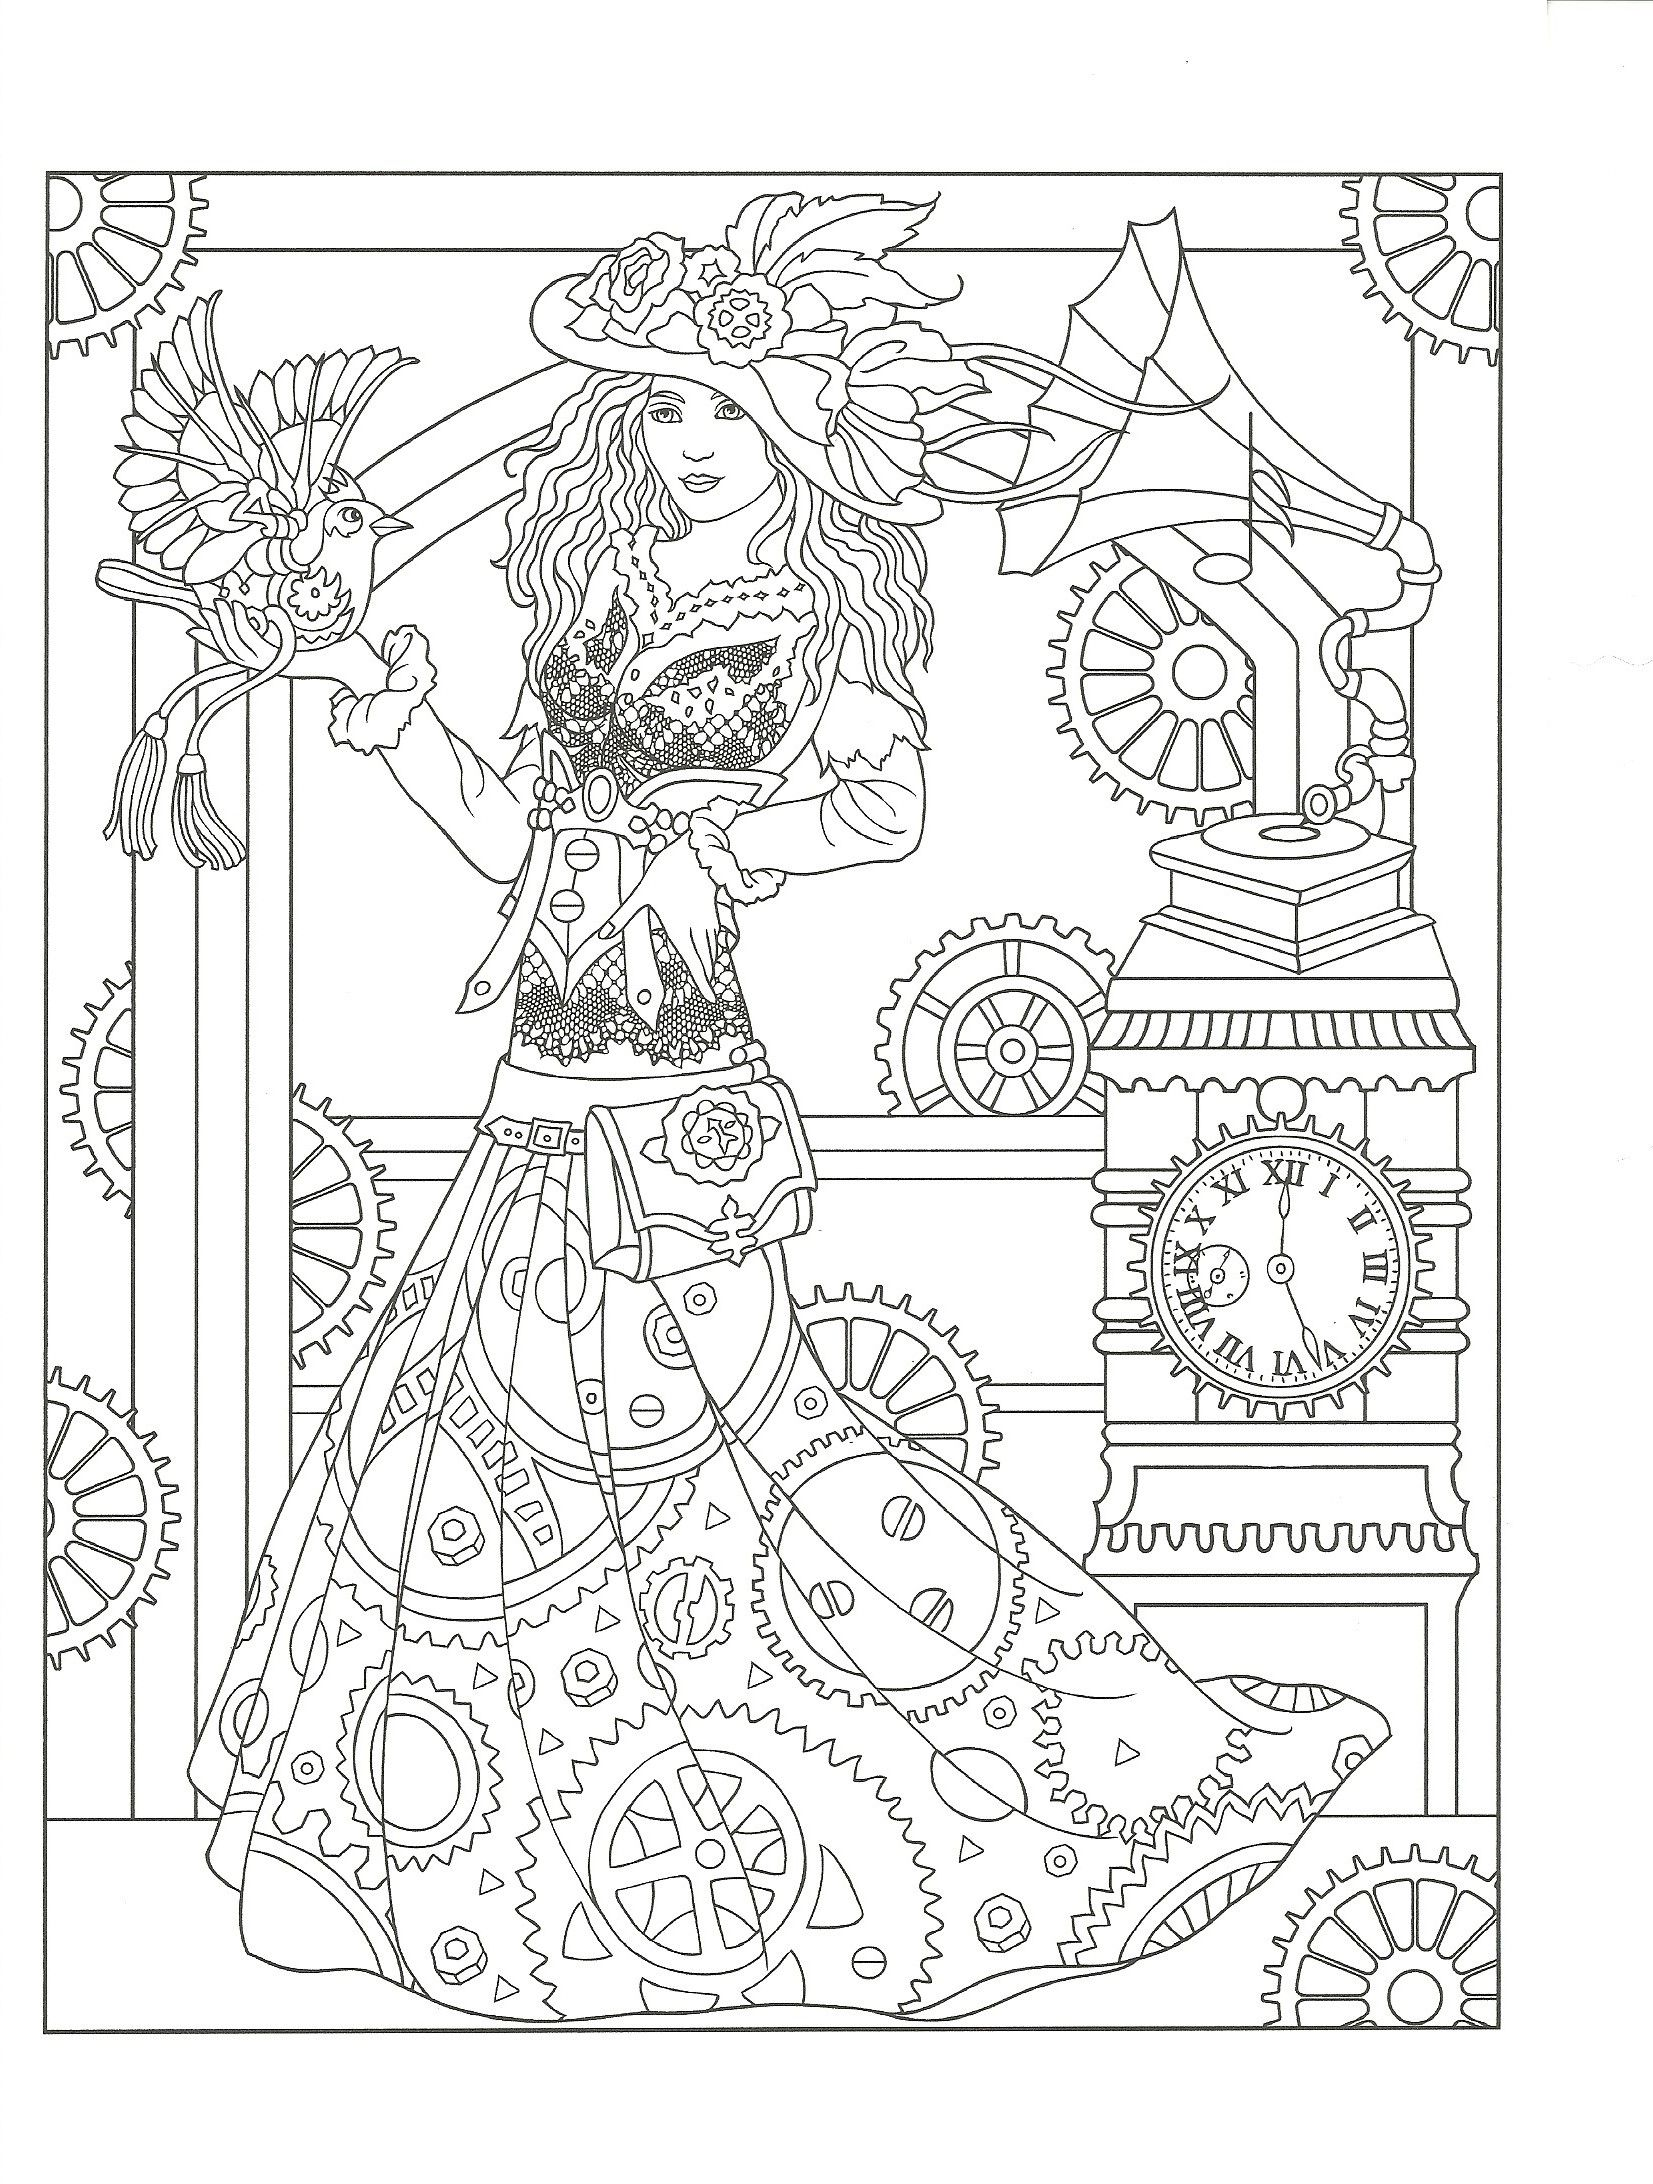 Flower drawings on pinterest dover publications coloring pages and - Adult Coloring Page From Creative Haven Steampunk Fashions Coloring Book Dover Publications Artwork By